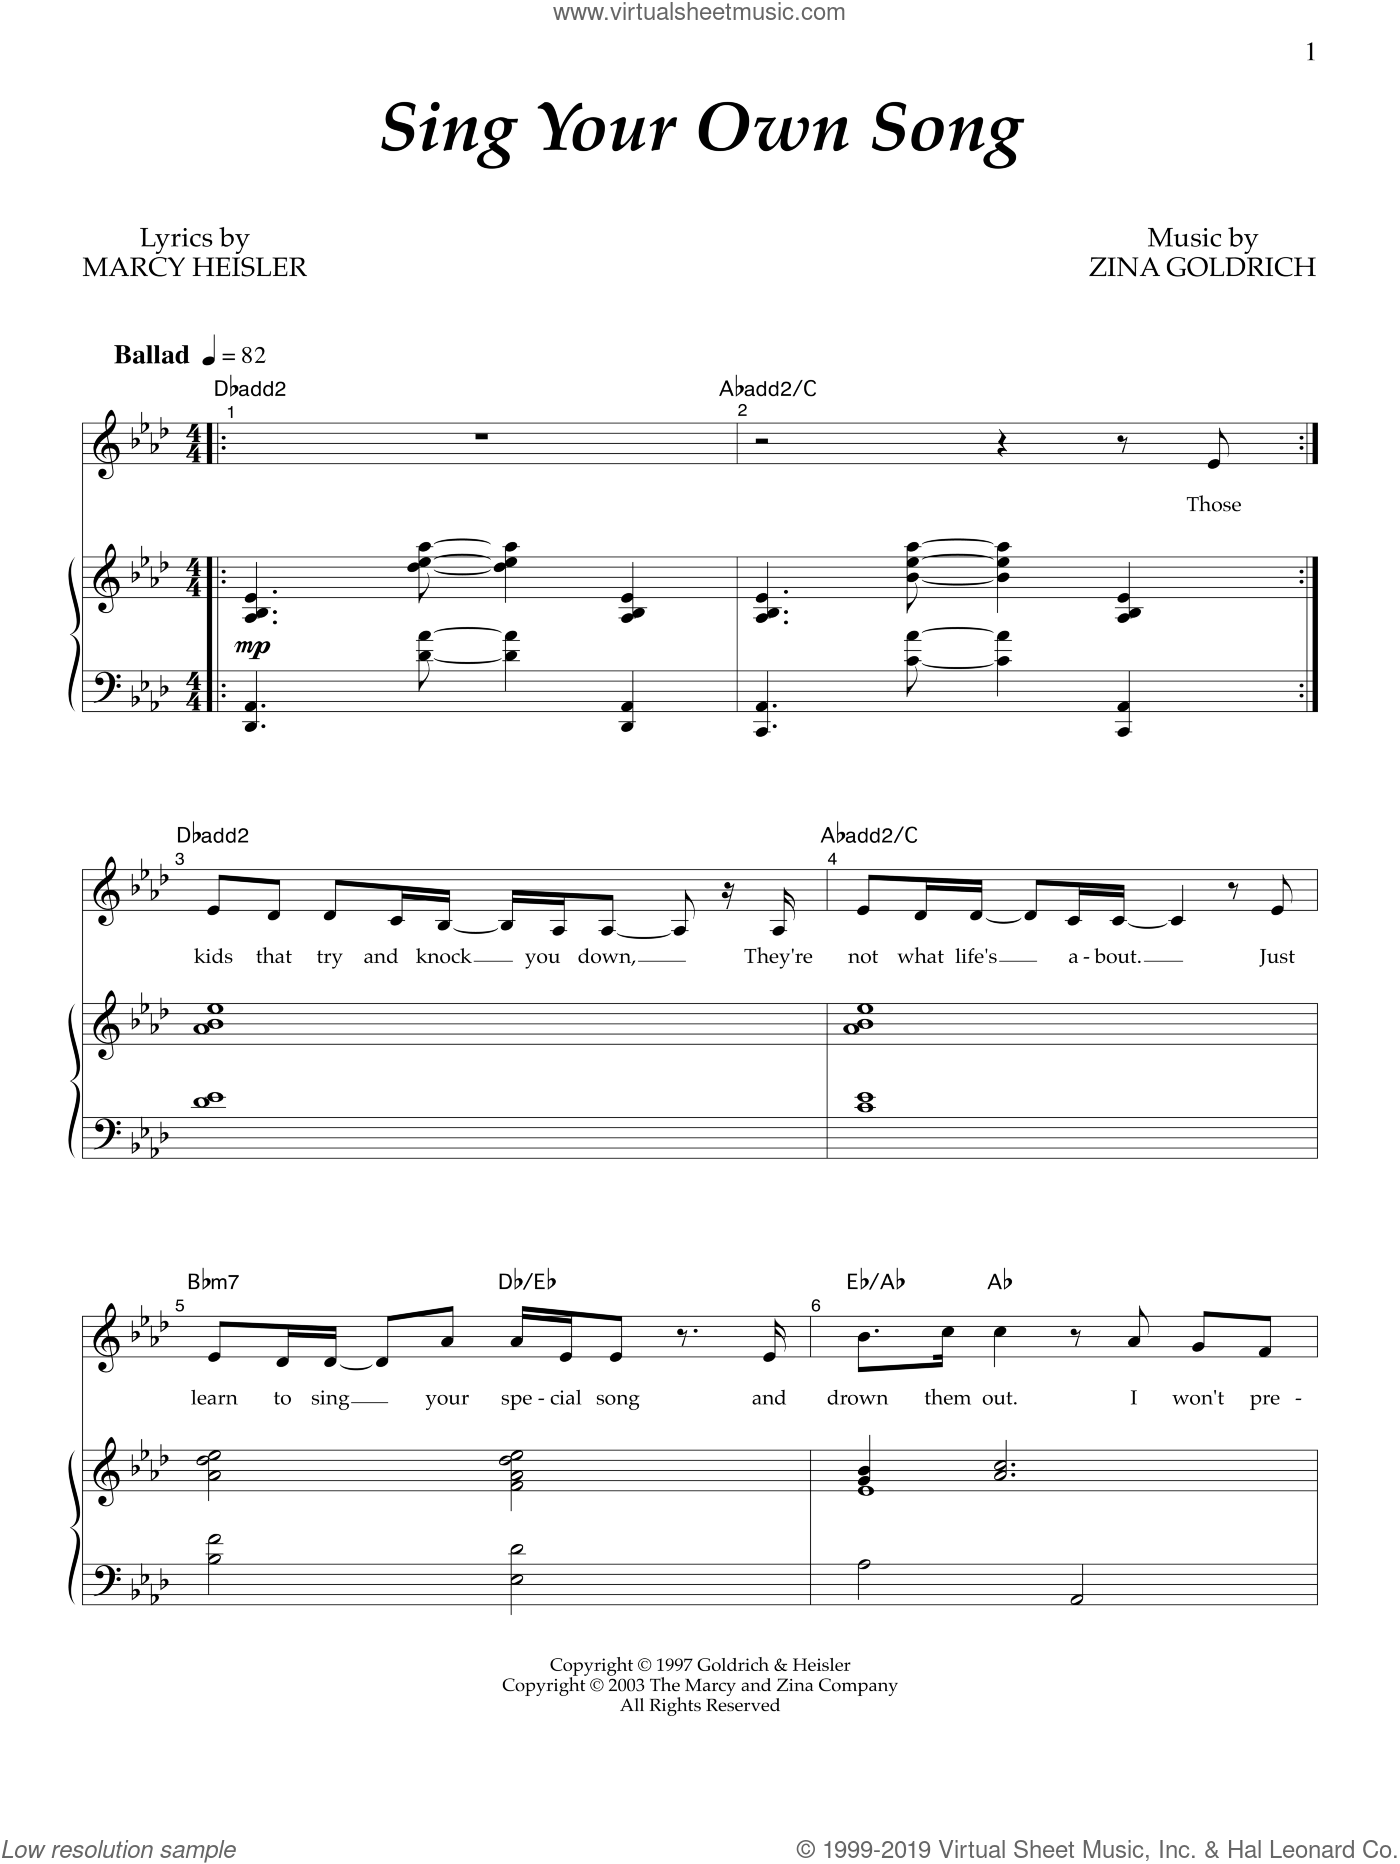 Sing Your Own Song sheet music for voice and piano by Marcy Heisler, Goldrich & Heisler and Zina Goldrich. Score Image Preview.